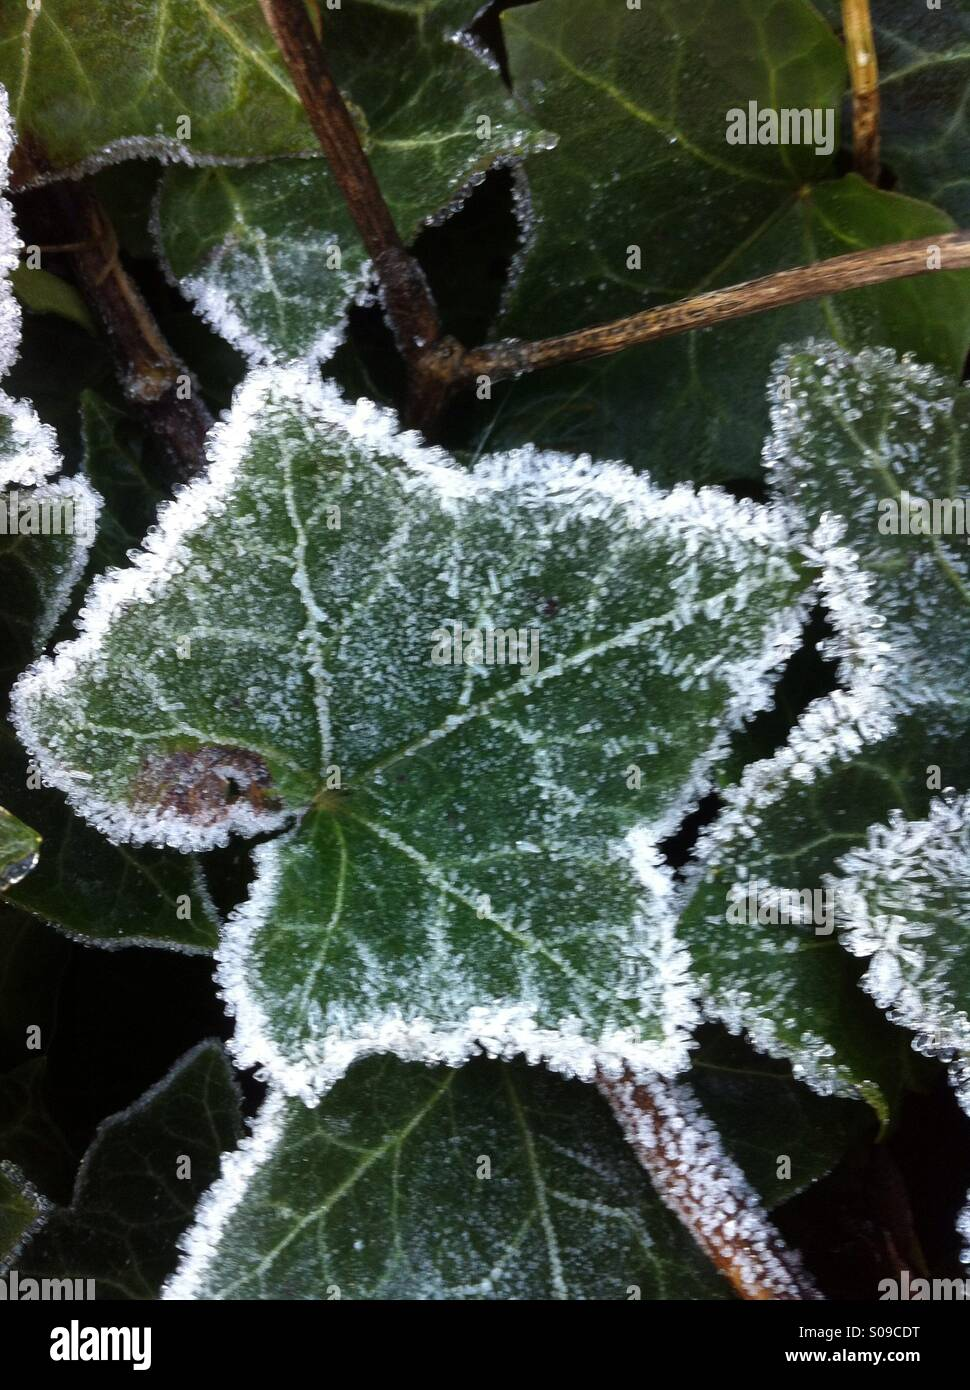 785 frozen ivy stock photos, vectors, and illustrations are available royalty-free.